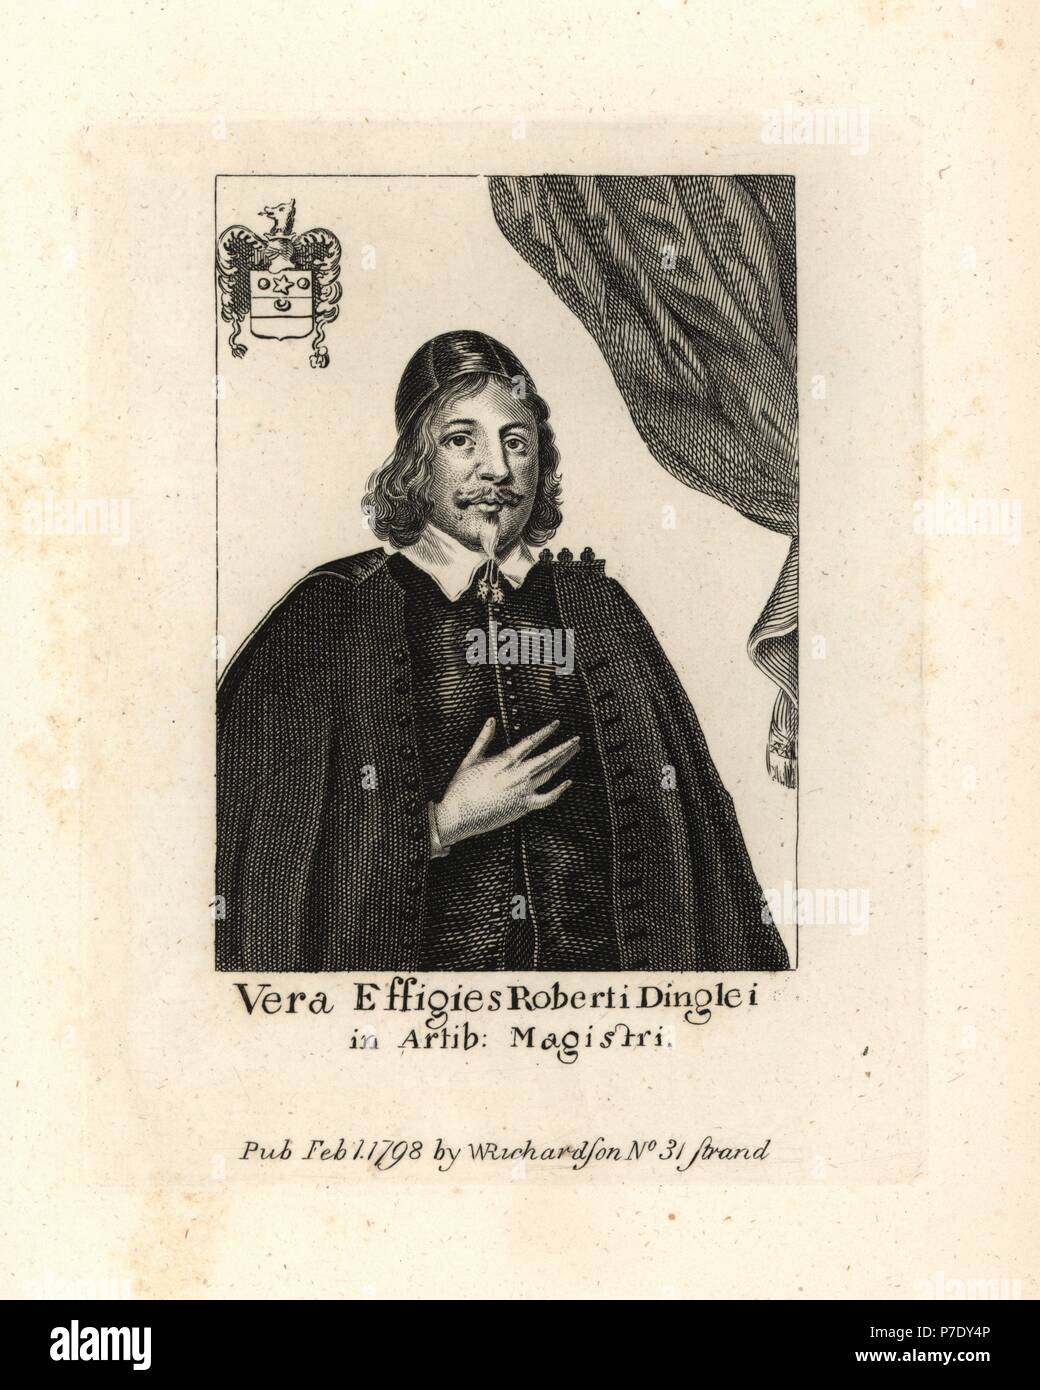 Robert Dingley, 1619-1660. Puritan divine and preacher, M.A. Magdalen College, Oxford. Copperplate engraving from William Richardson's Portraits Illustrating Granger's Biographical History of England, London, 1792–1812. James Granger (1723–1776) was an English clergyman, biographer, and print collector. - Stock Image